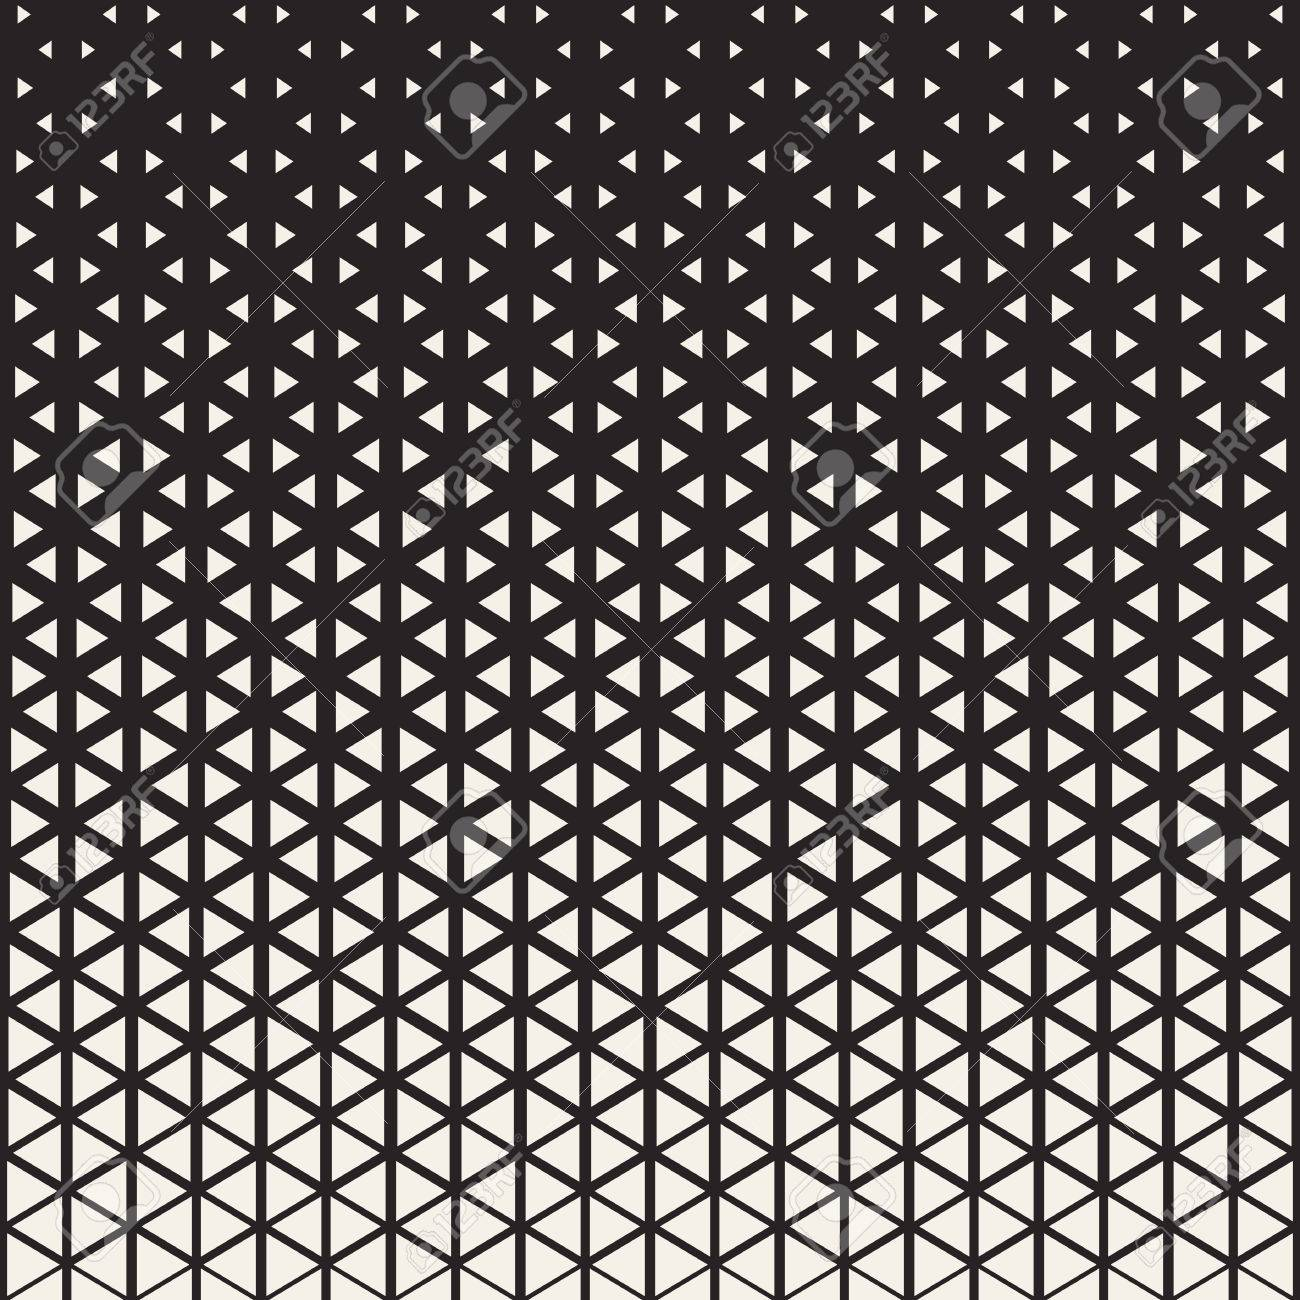 Abstract geometric pattern design  Vector illustration for hipster